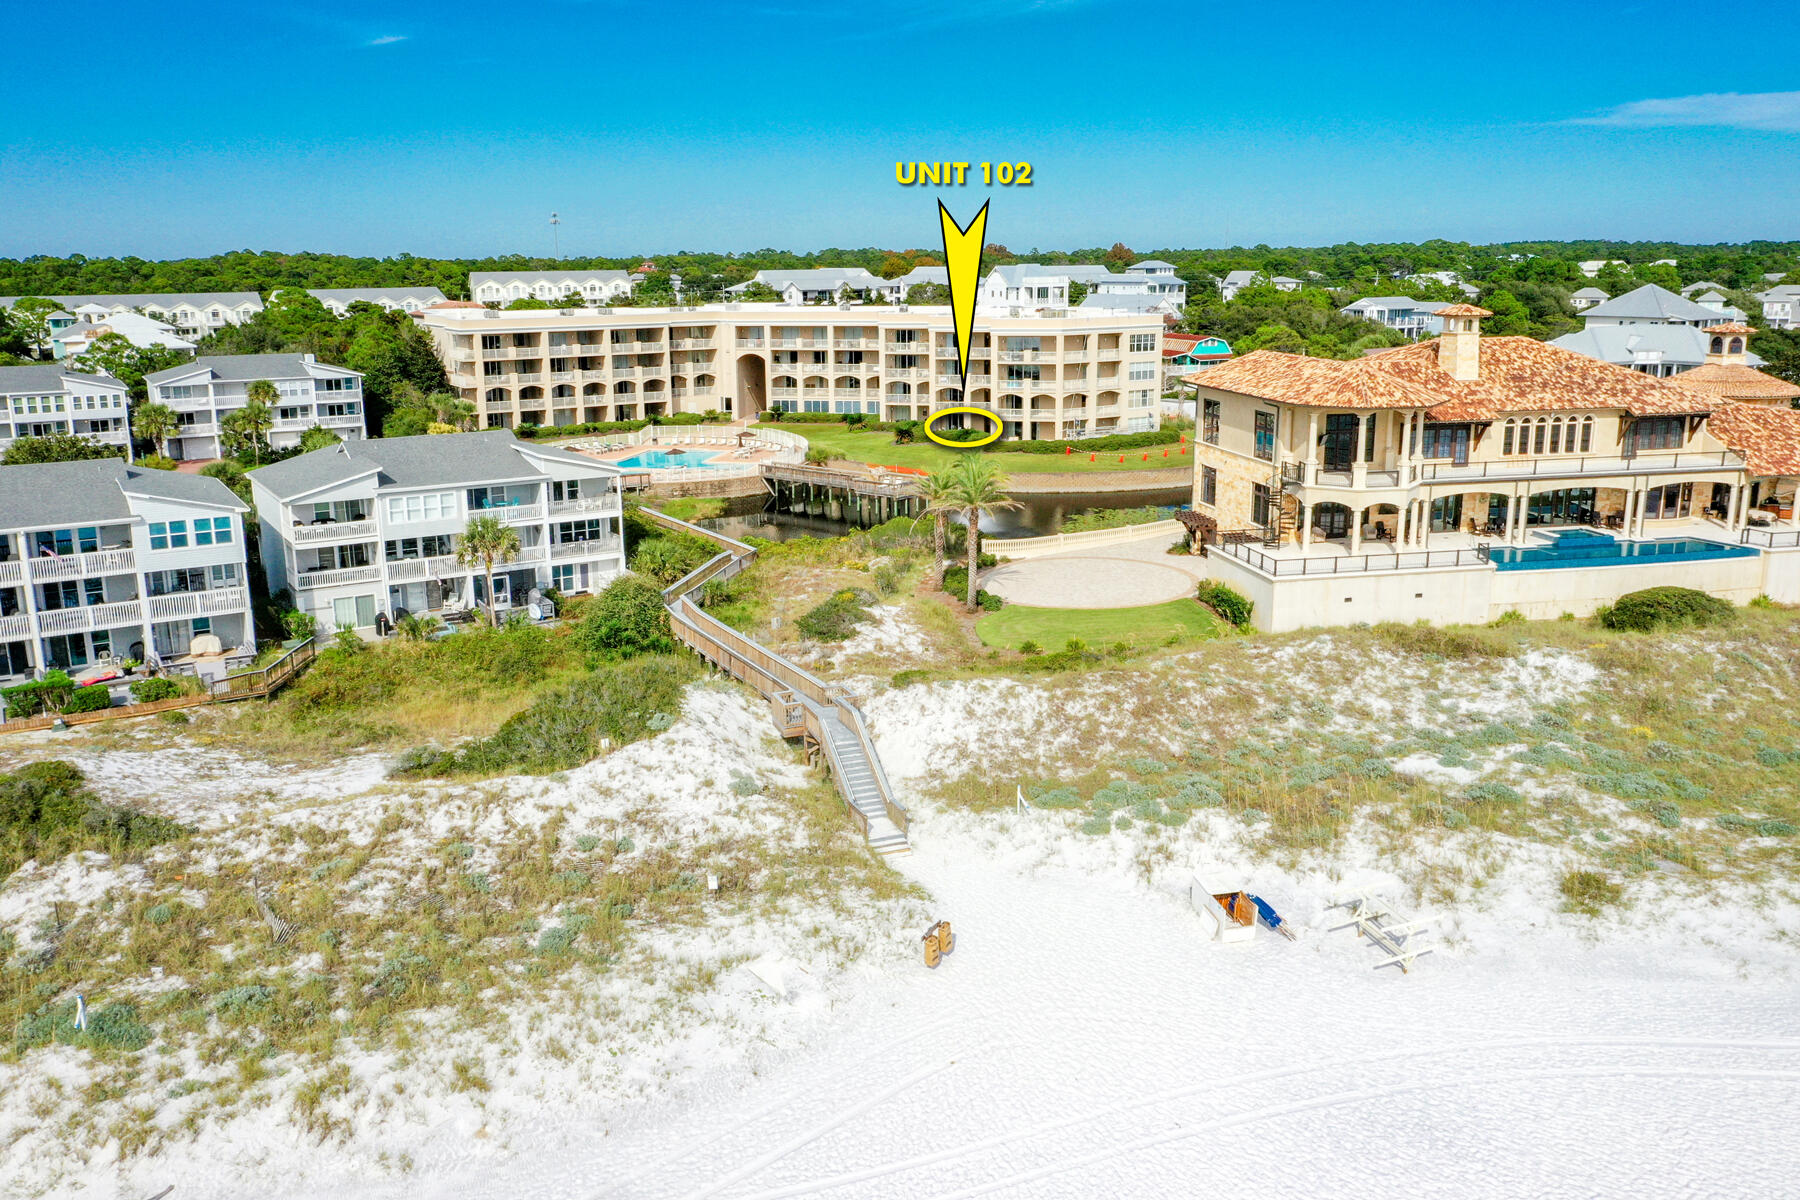 Fantastic opportunity to enjoy a fabulous condominium community with direct access to the most amazing beach in the world, along Florida's coveted Scenic 30A! San Remo owners and guests enjoy private, gated access, architecturally inspiring building, spacious floorplans, wonderful amenities, and magnificent views of the Gulf of Mexico!